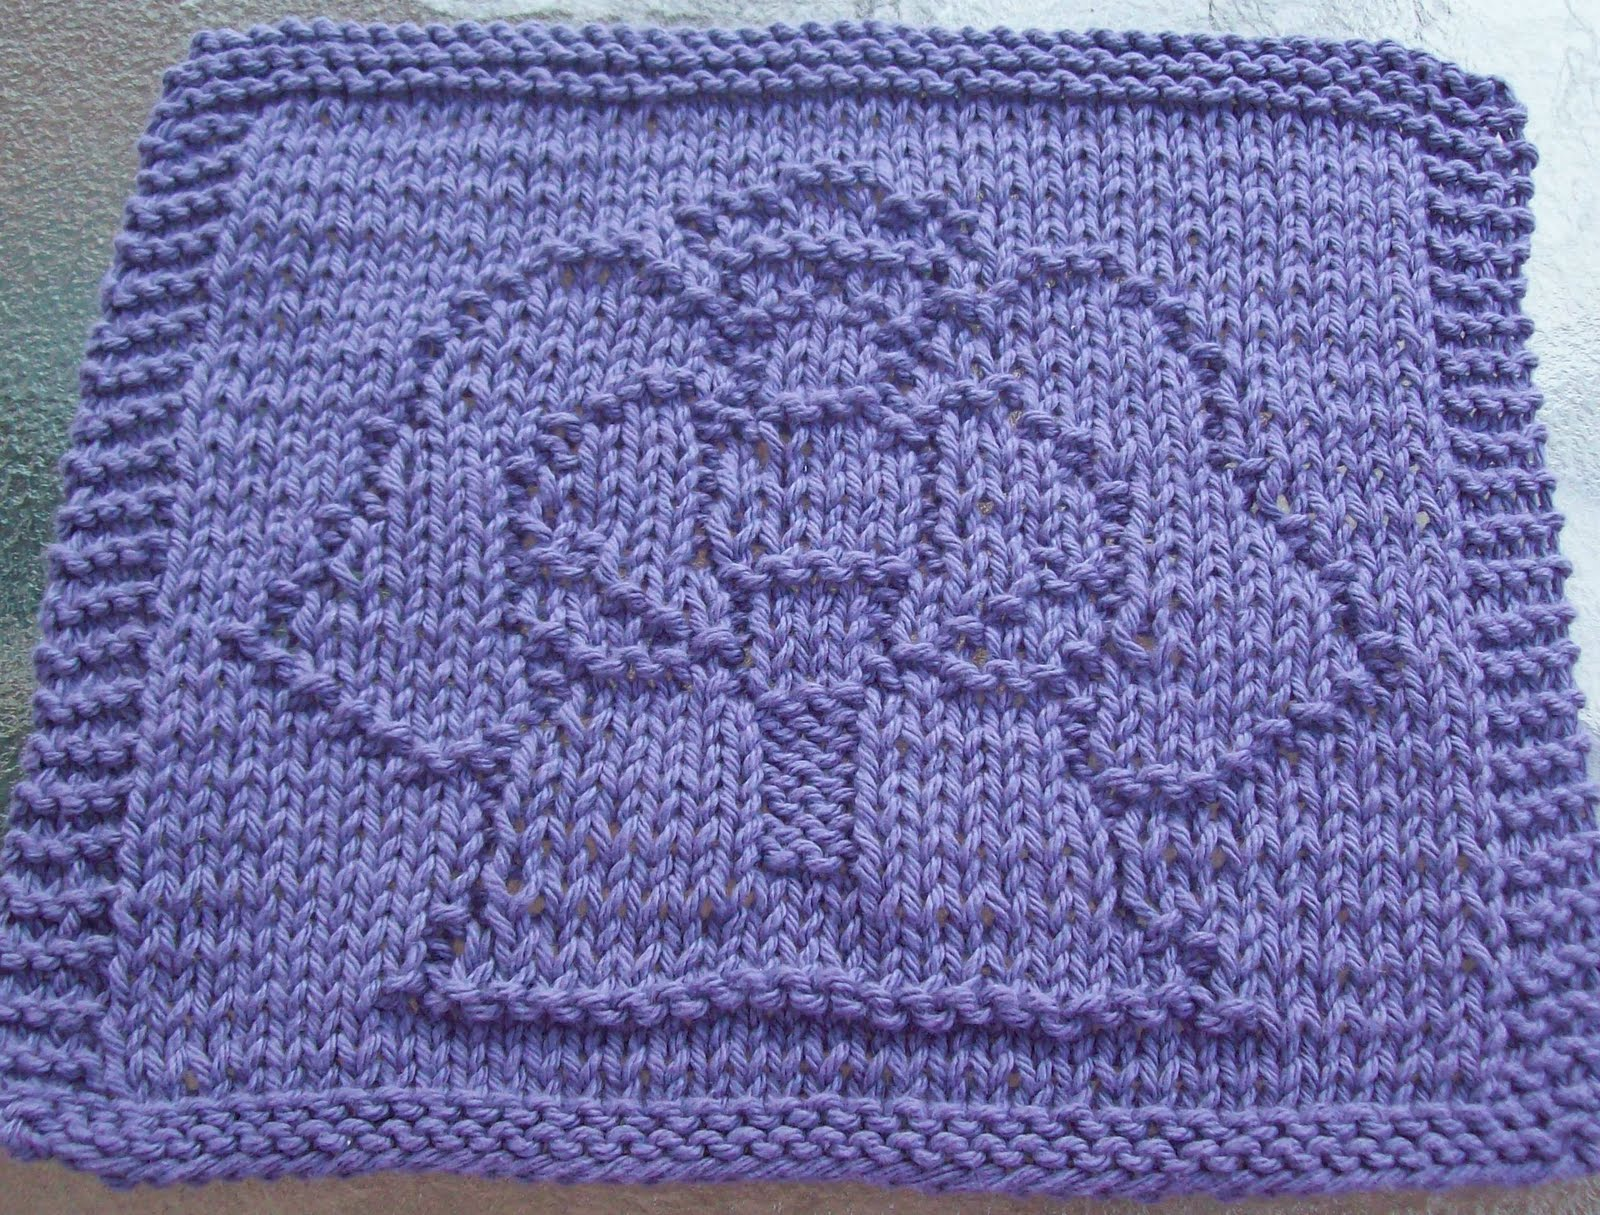 Dish Cloth Knitting Pattern : DigKnitty Designs: Angel Knitting Knit Dishcloth Pattern